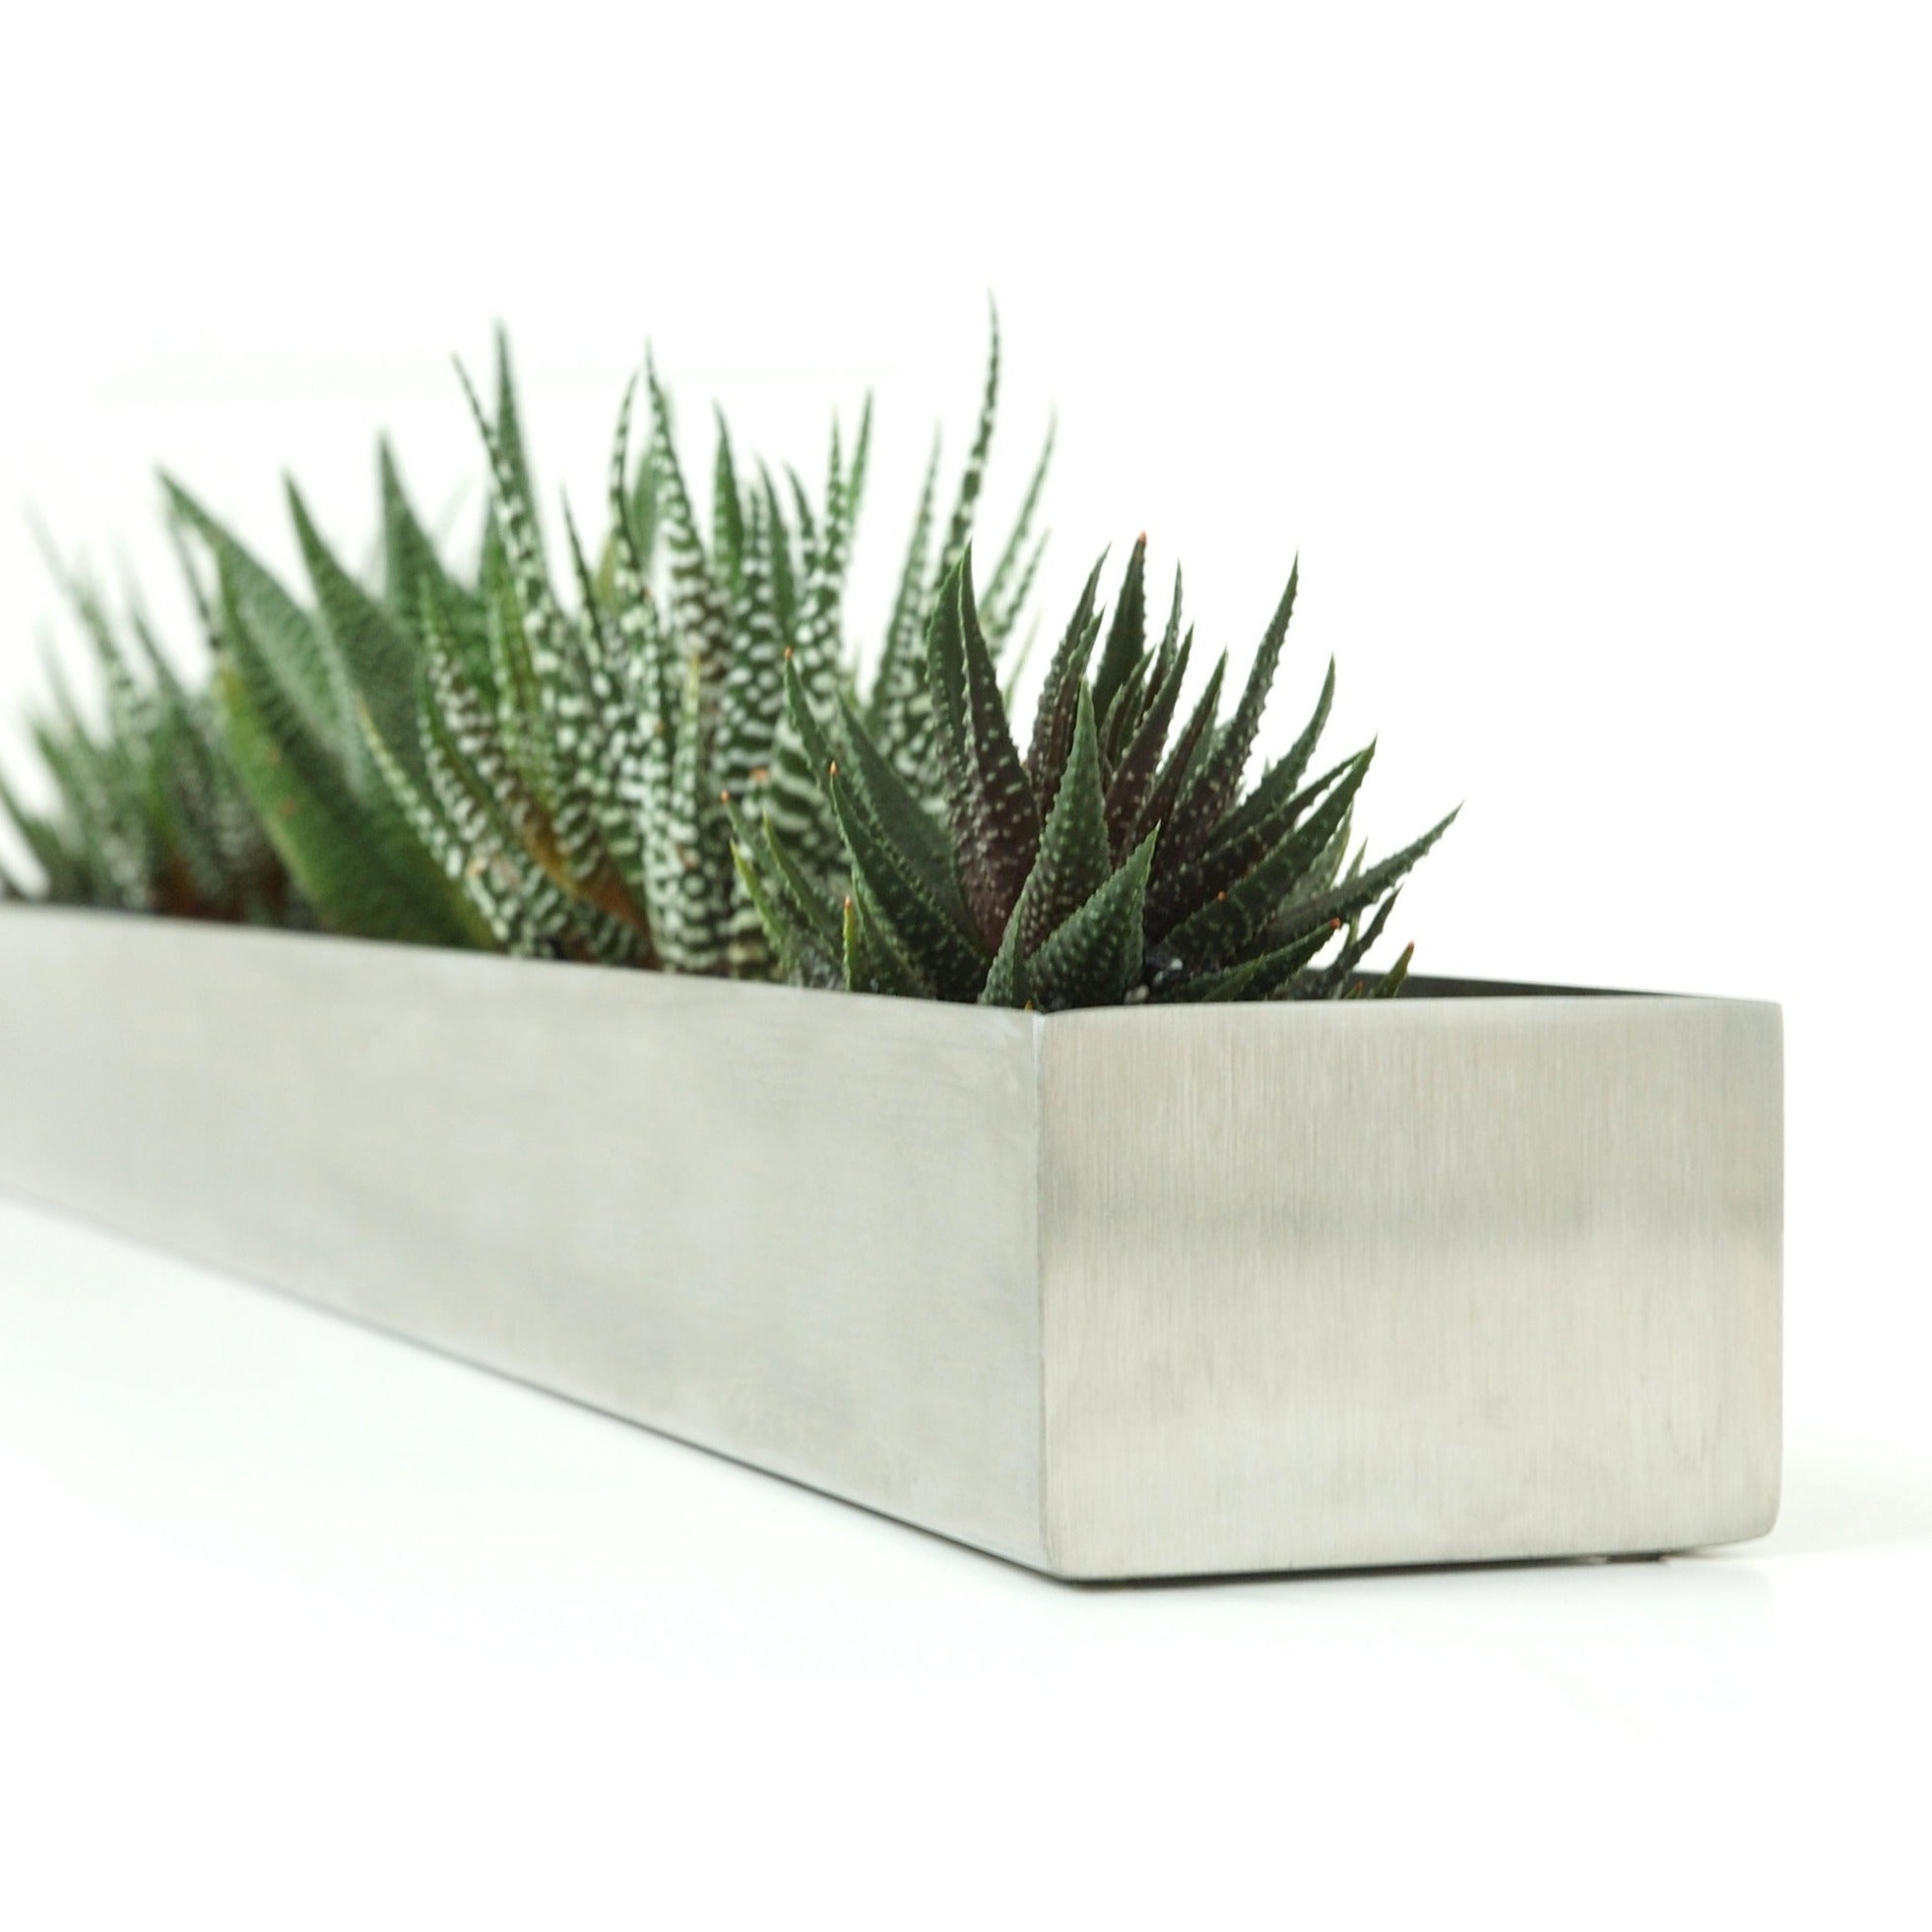 Gus* Modern Plant Trough